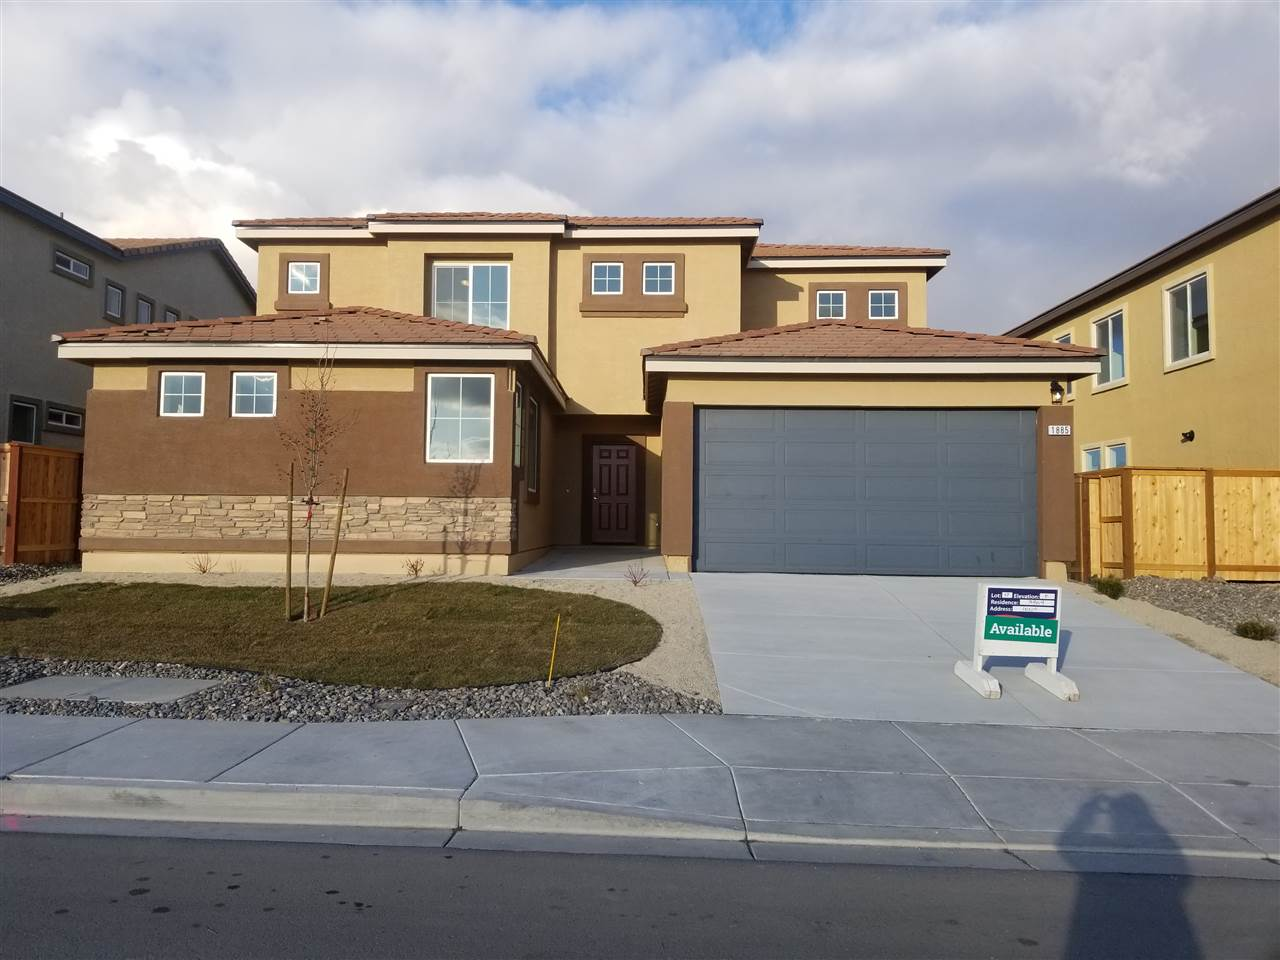 Single Family Homes for Active at Address Not Available Sun Valley, Nevada 89433 United States